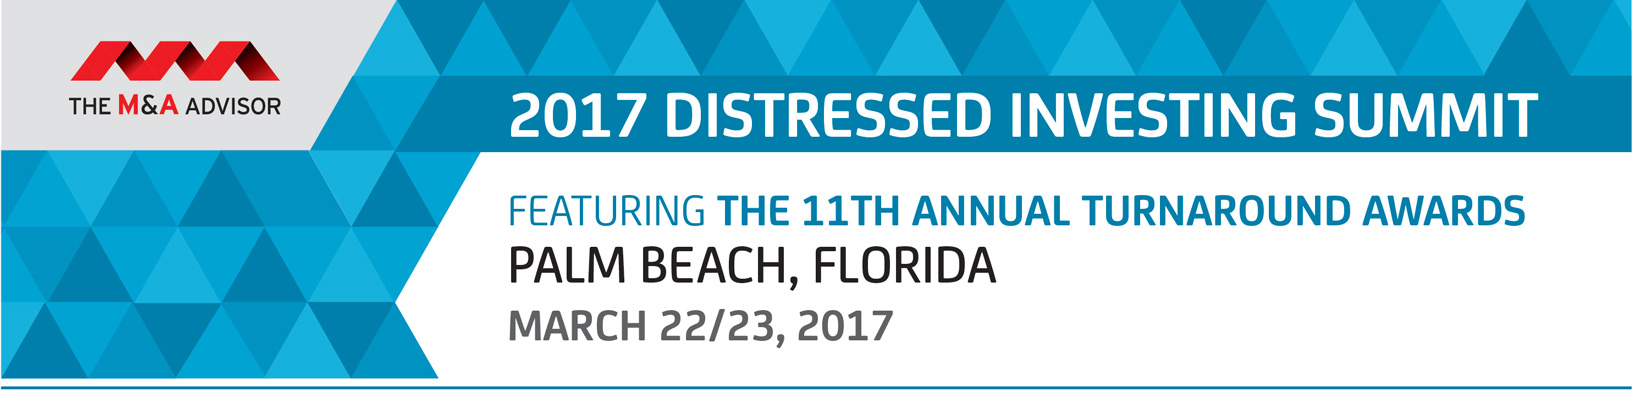 2017 Distressed Investing Summit featuring 11th Annual Turnaround Awards